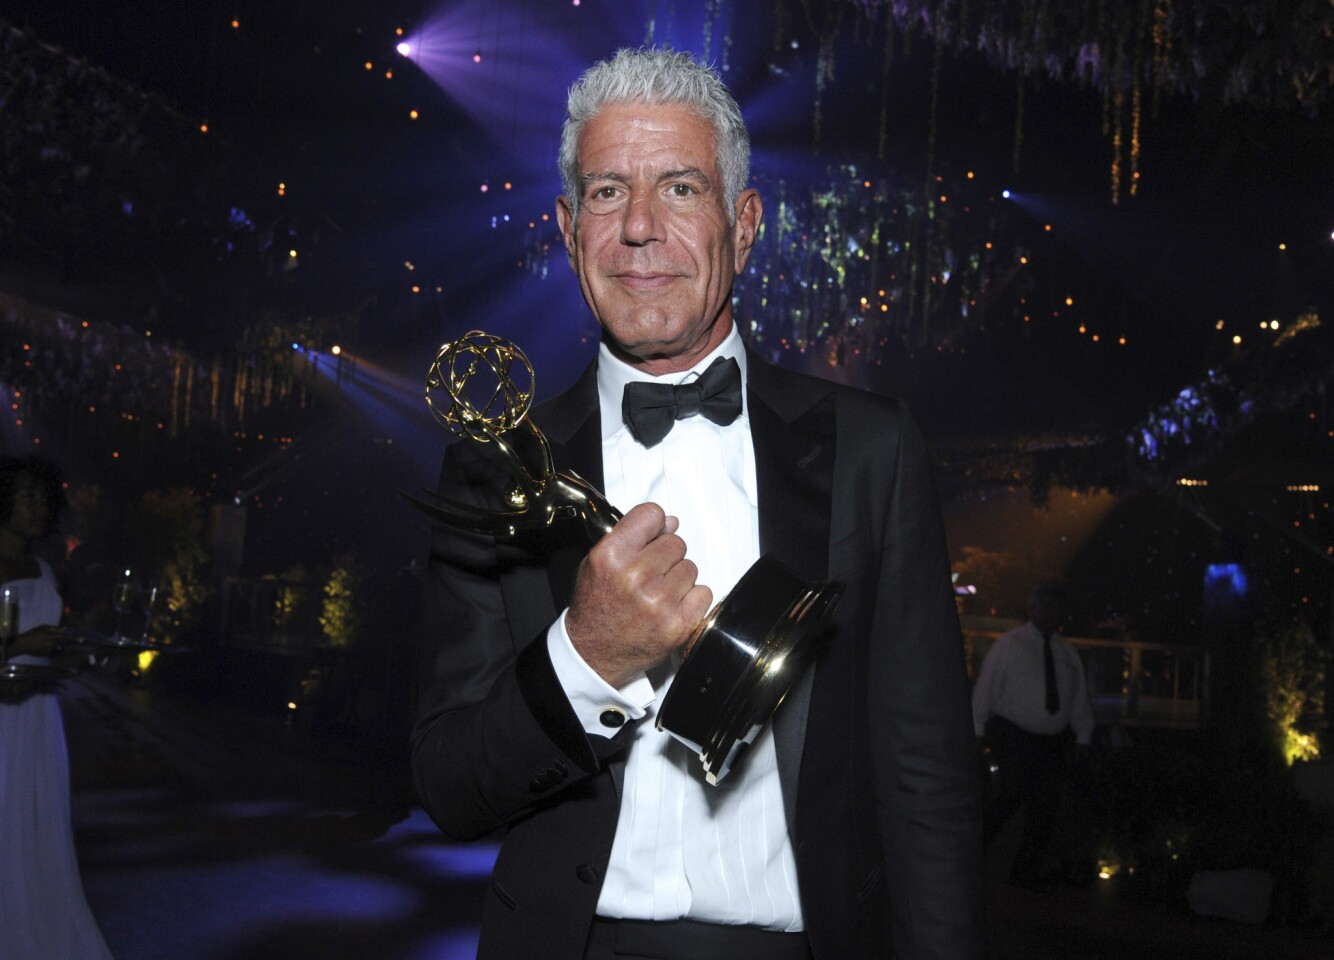 """Anthony Bourdain winner of the award for outstanding informational series or special for """"Anthony Bourdain: Parts Unknown"""" attends the Governors Ball at the Microsoft Theater in Los Angeles in 2016."""